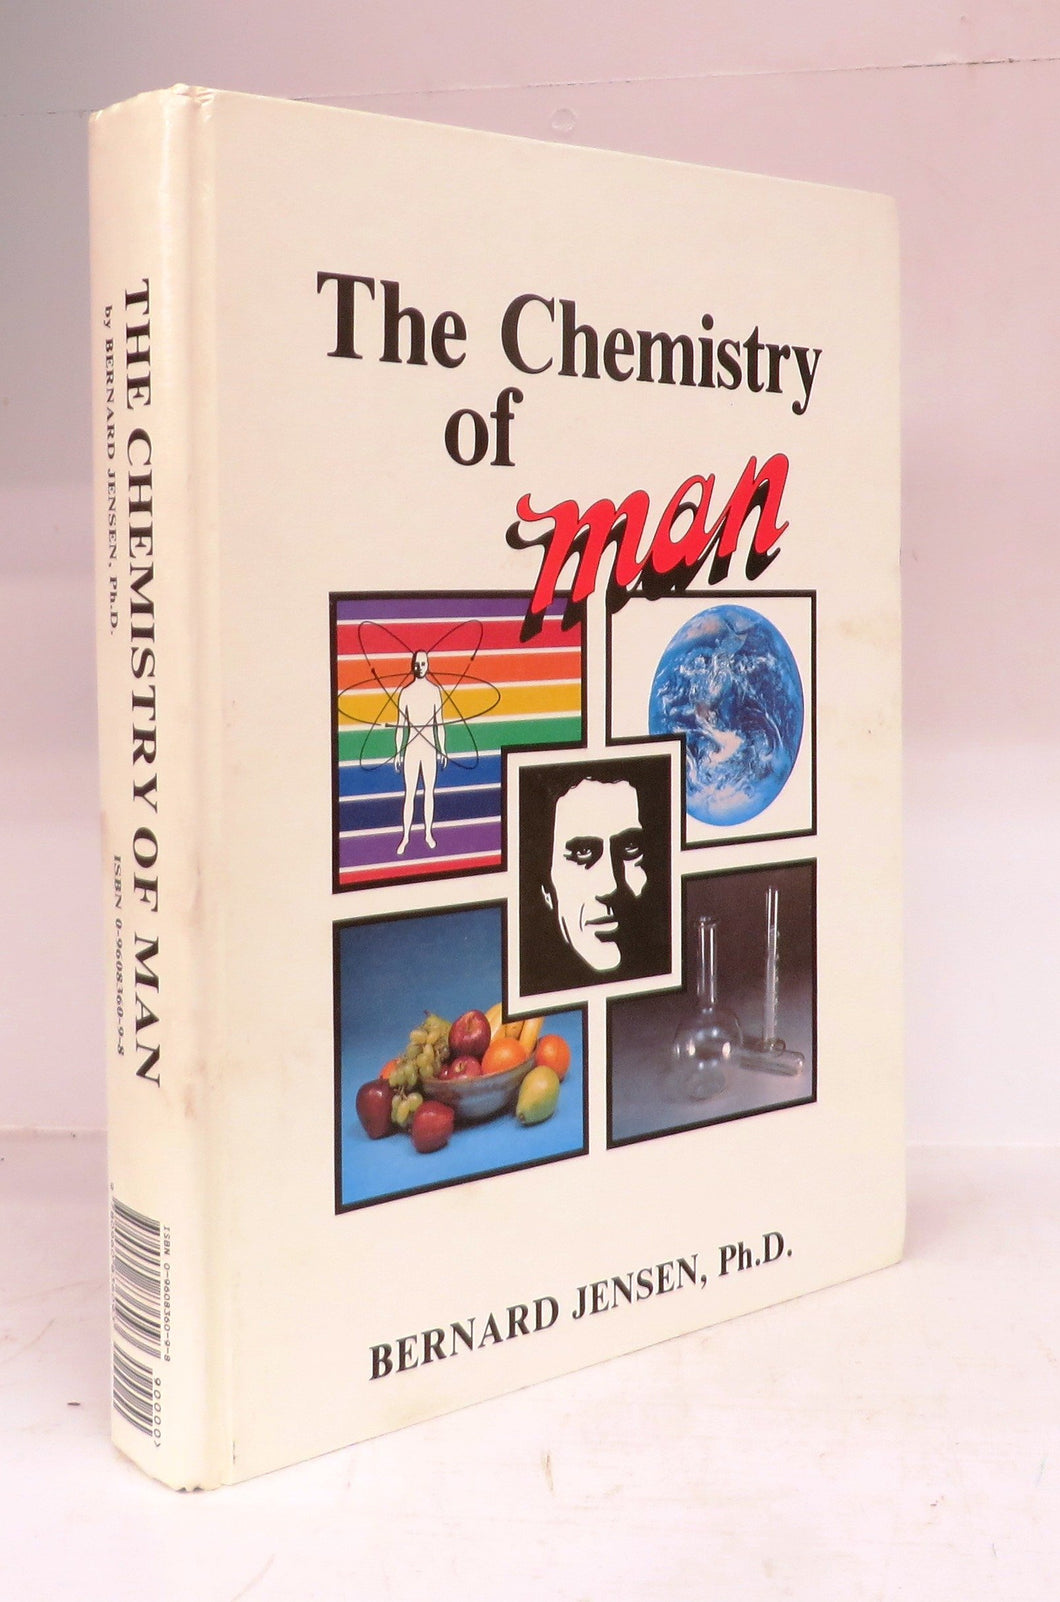 The Chemistry of Man